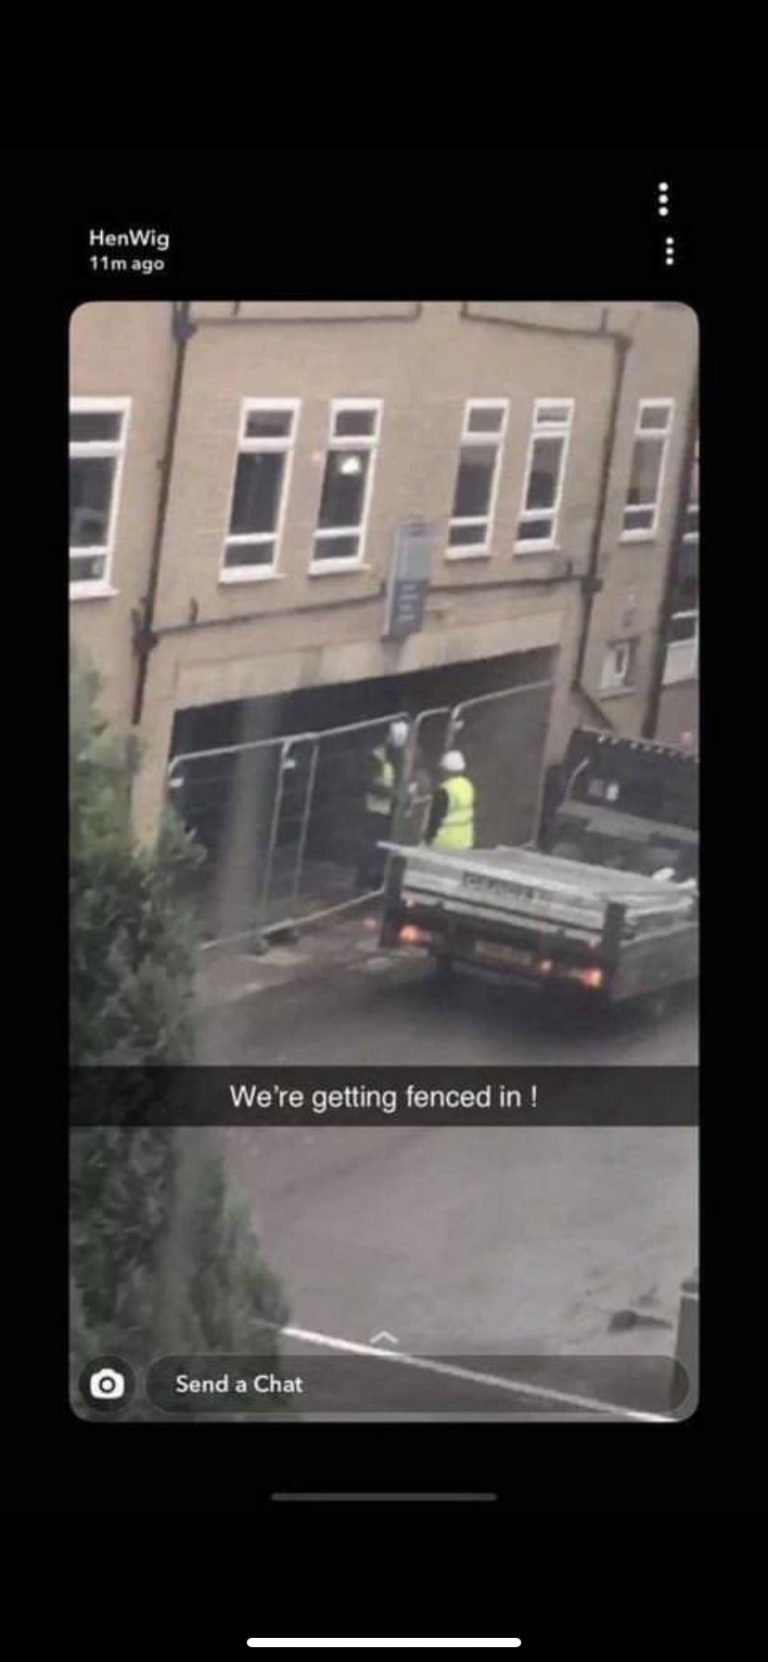 BREAKING: UNIVERSITY OF MANCHESTER STUDENTS ARE FENCED INTO HALLS